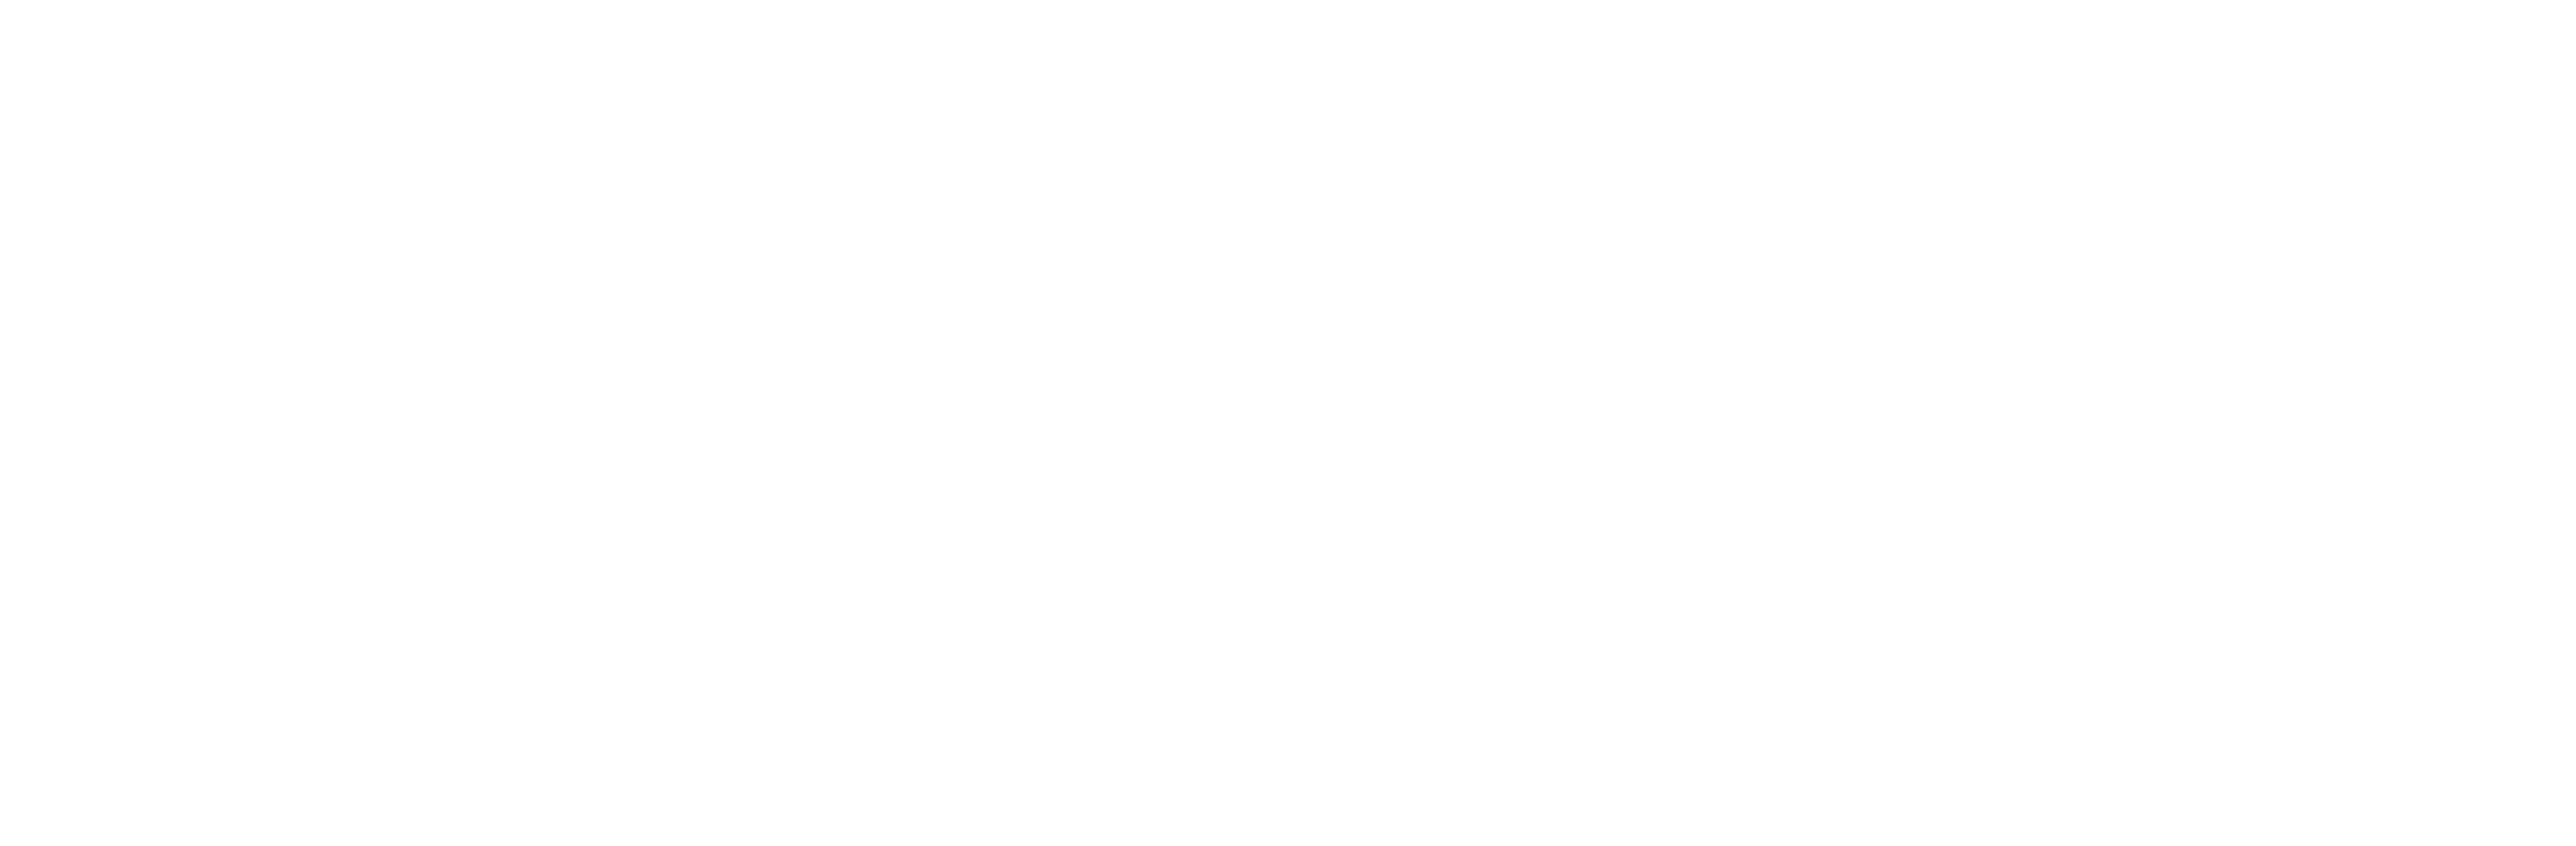 Essential Women Prayer Group